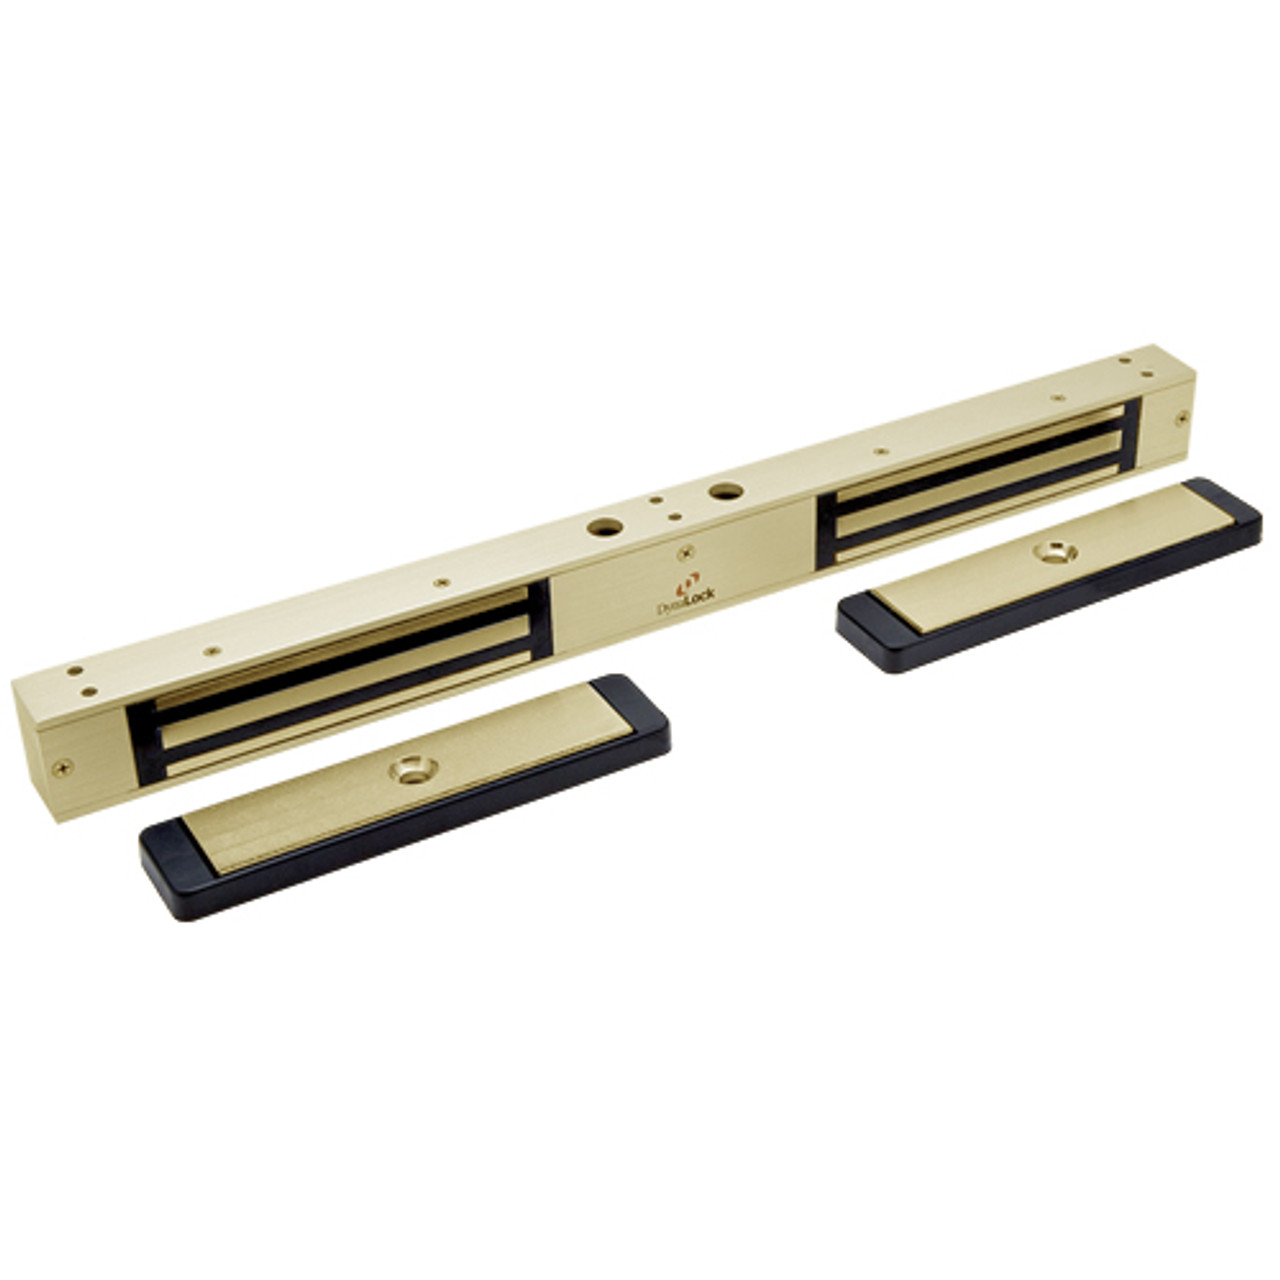 2522-US4-DSM2-DYN2 DynaLock 2500 Series Mini-Mag Double Electro-mag Lock for Outswing Door with Door Status Switch and DYN in Satin Brass